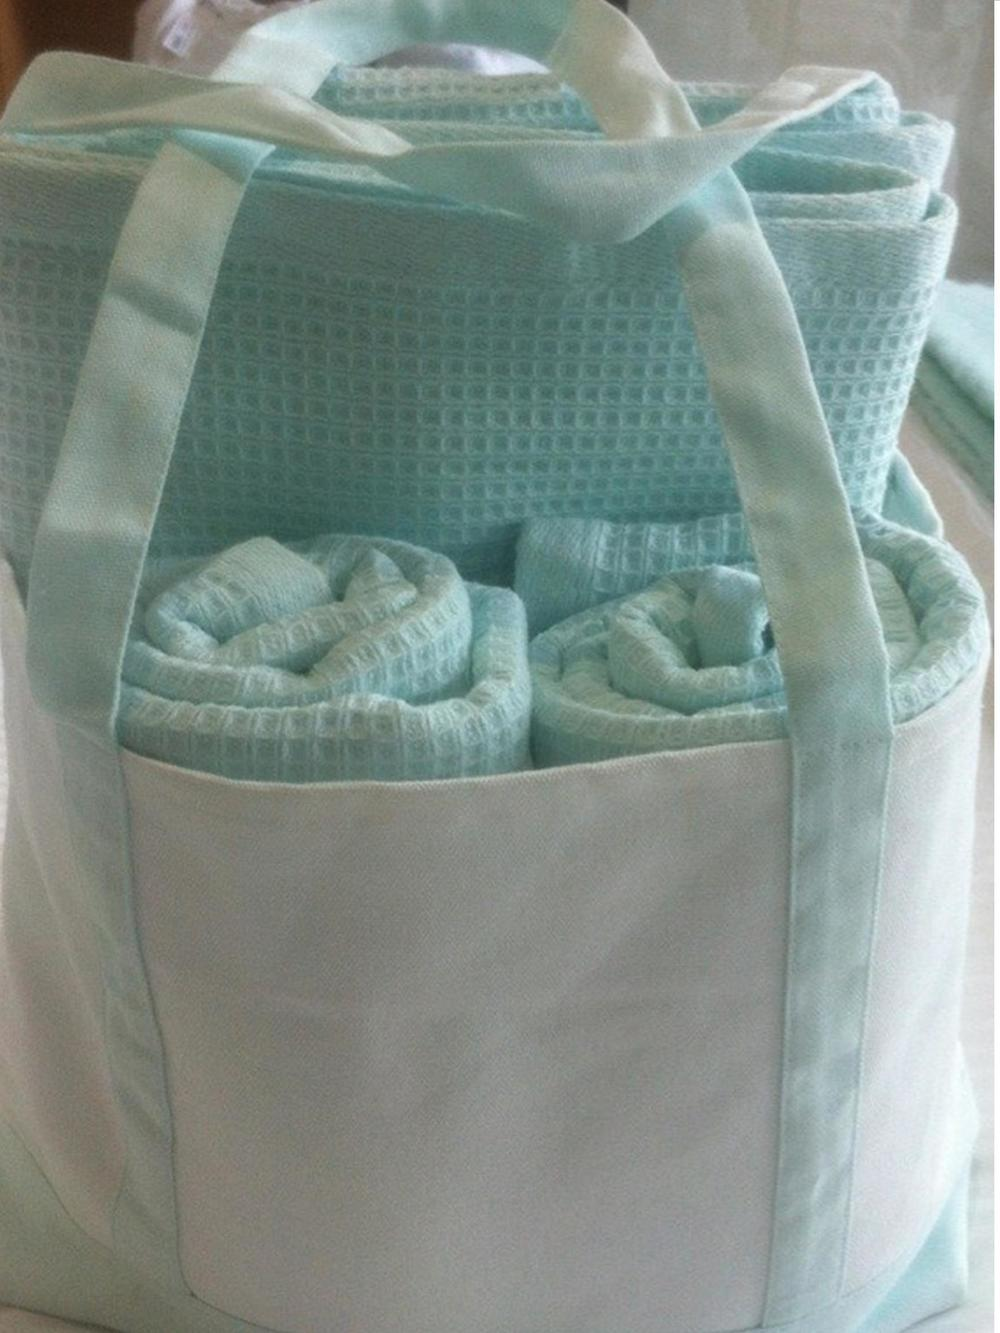 Waffle Towel Pack - 2 bath towels, 2 hand towels and a tote bag $49